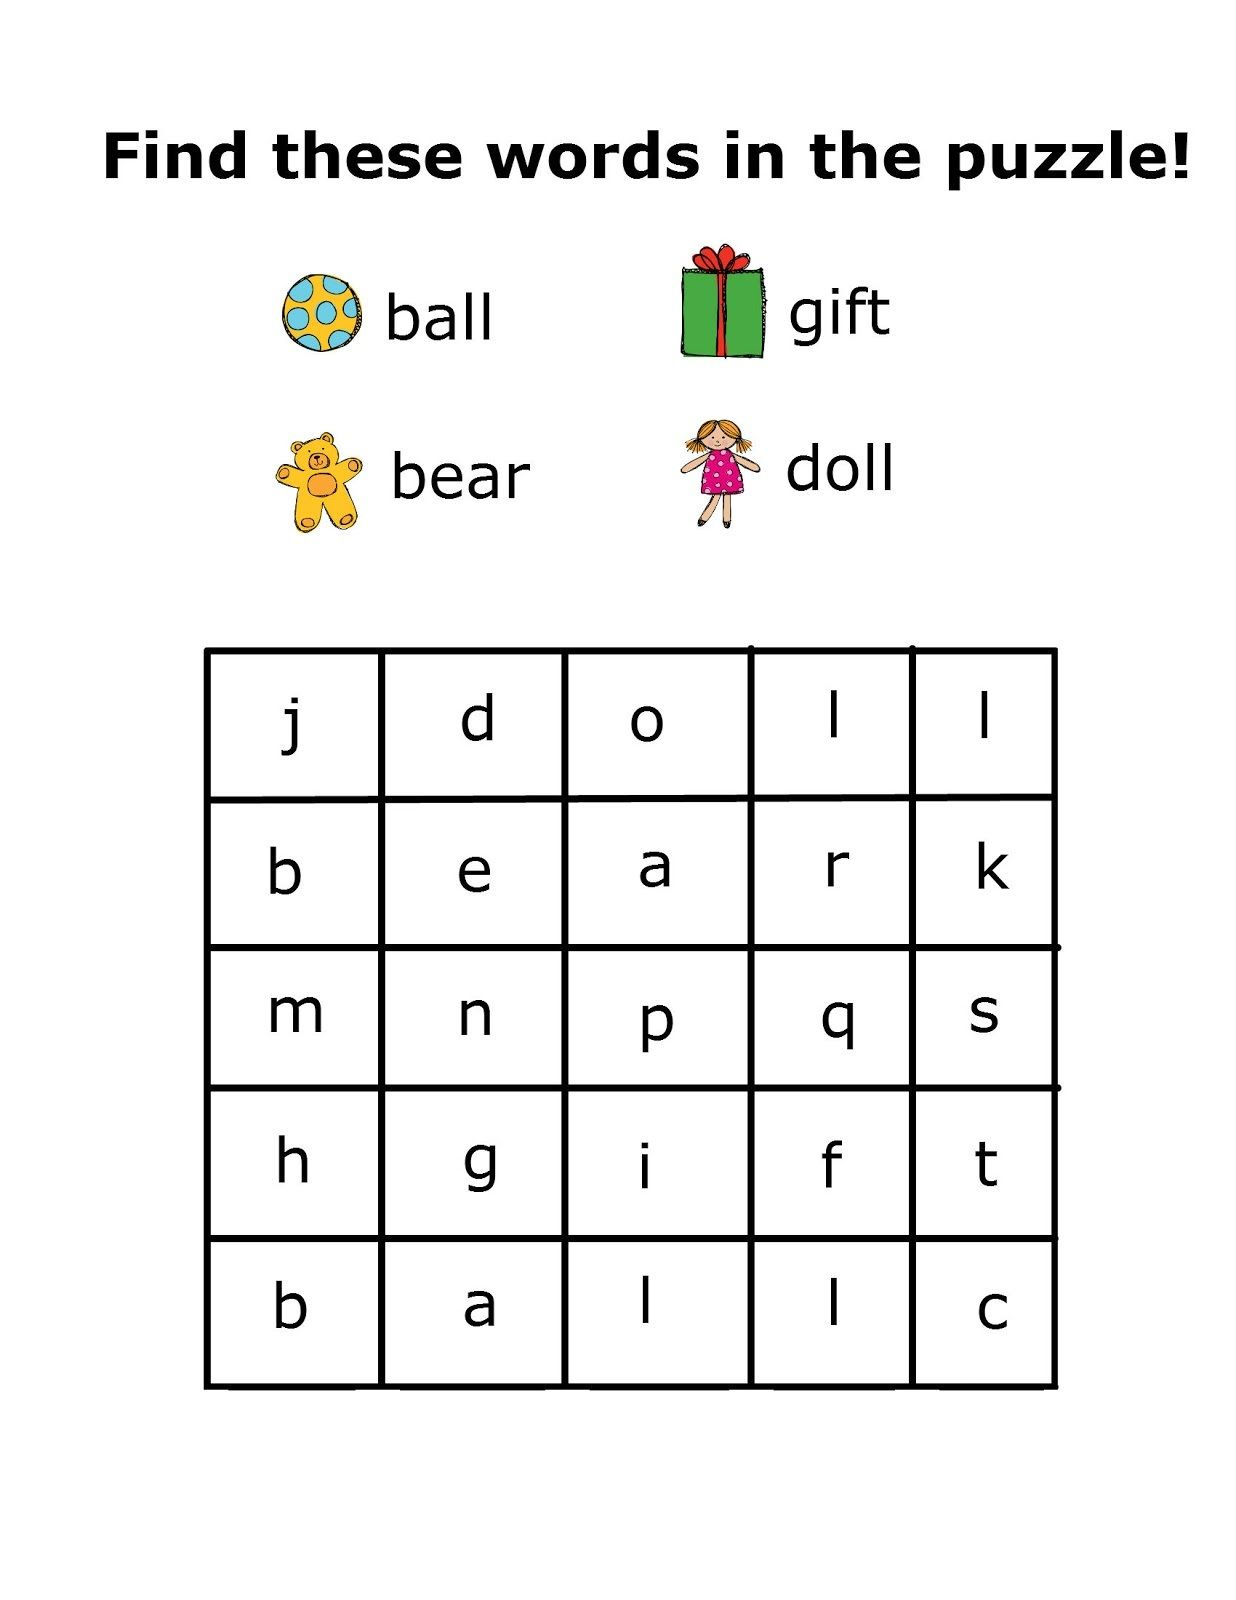 Worksheet Preschool Words simple word search for preschool kiddo shelter educative shelter